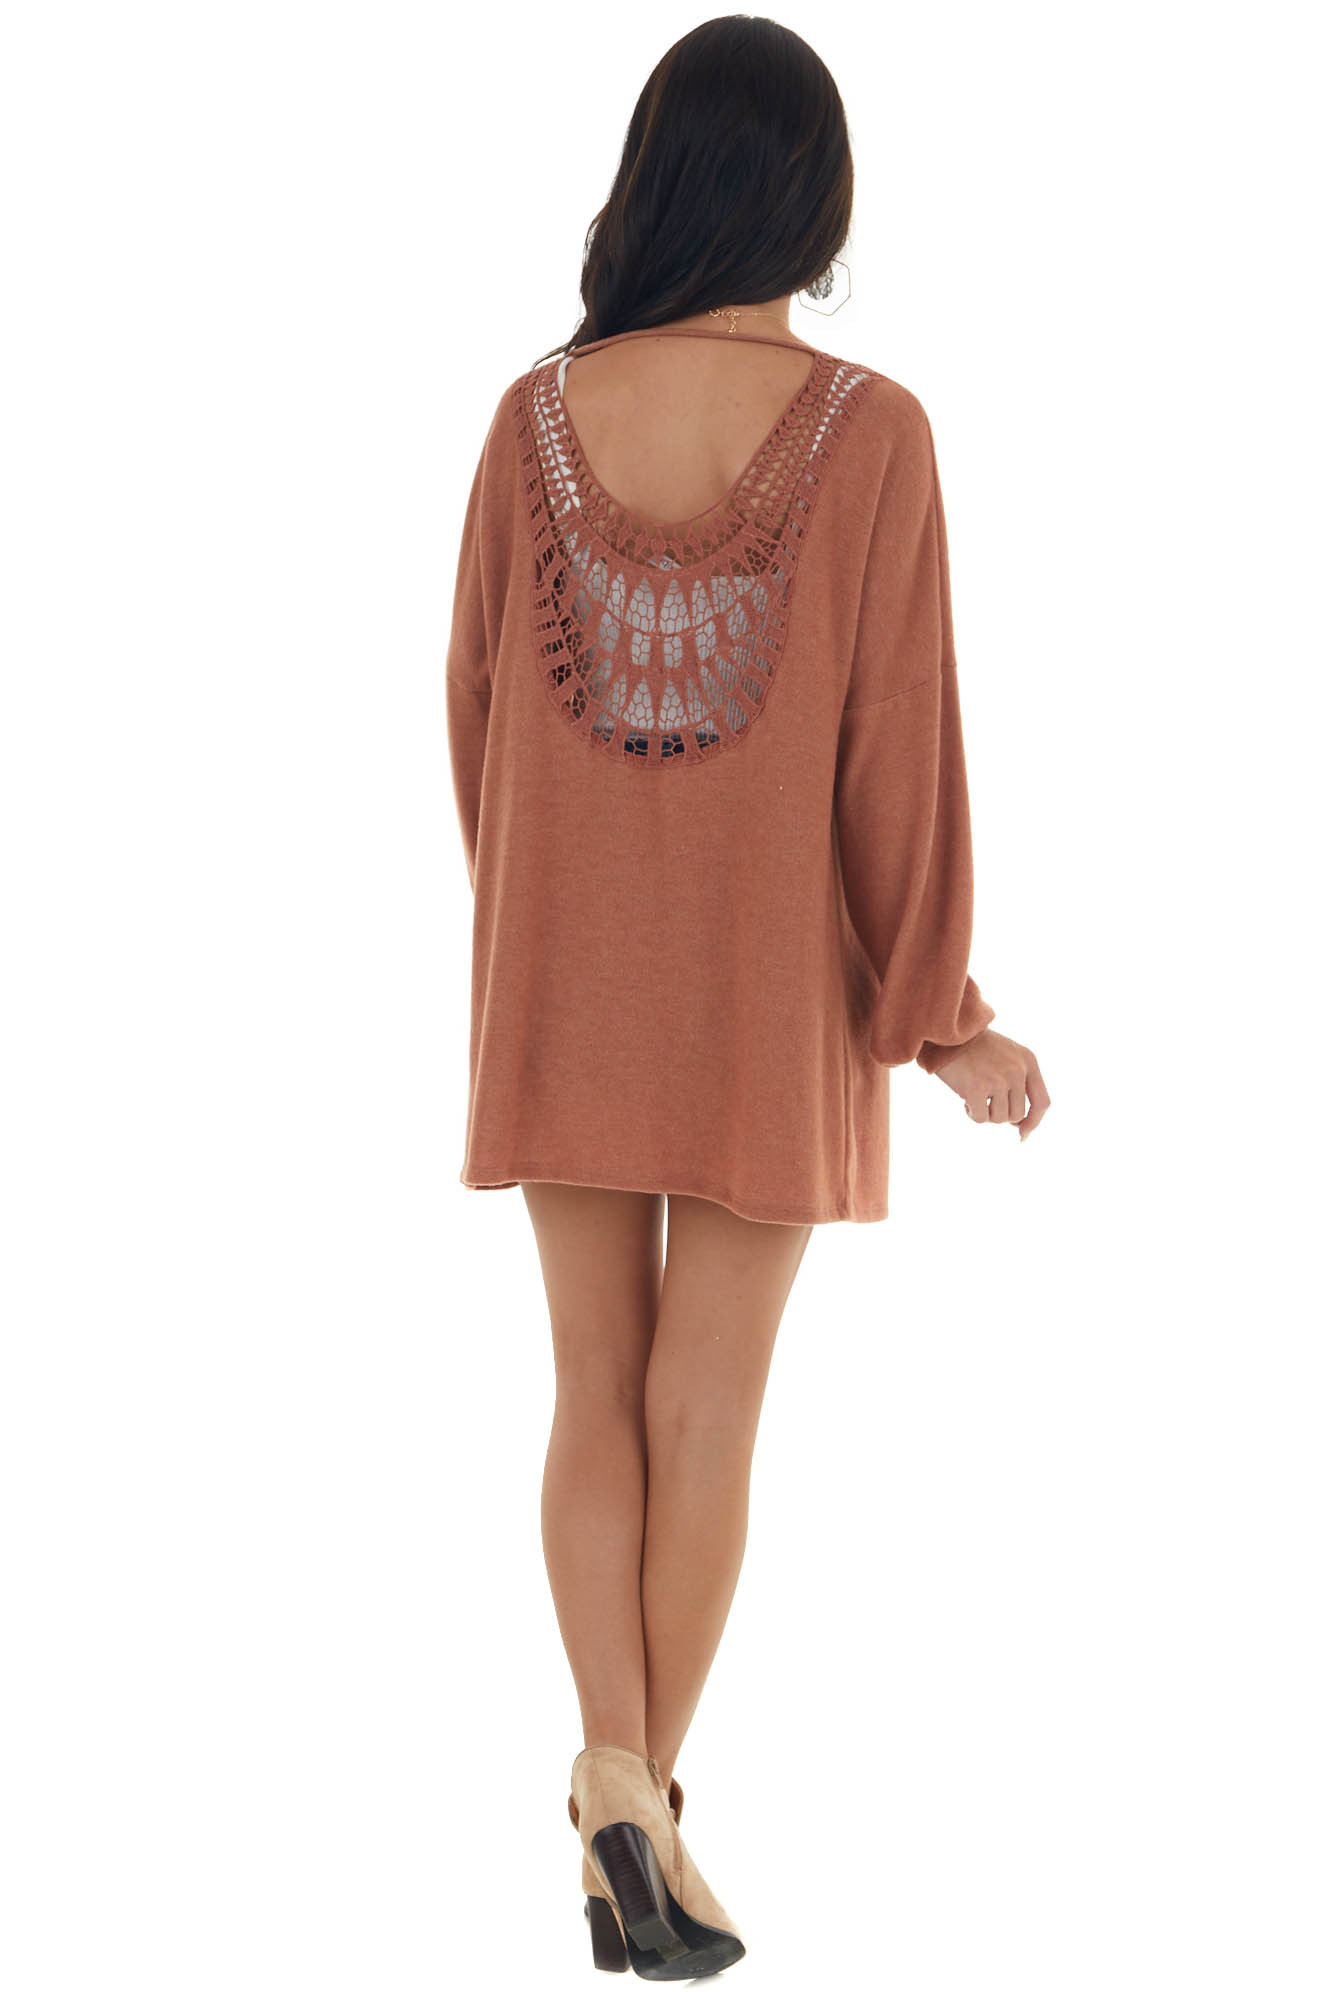 Tawny Long Sleeve Knit Cardigan with Crochet Detail